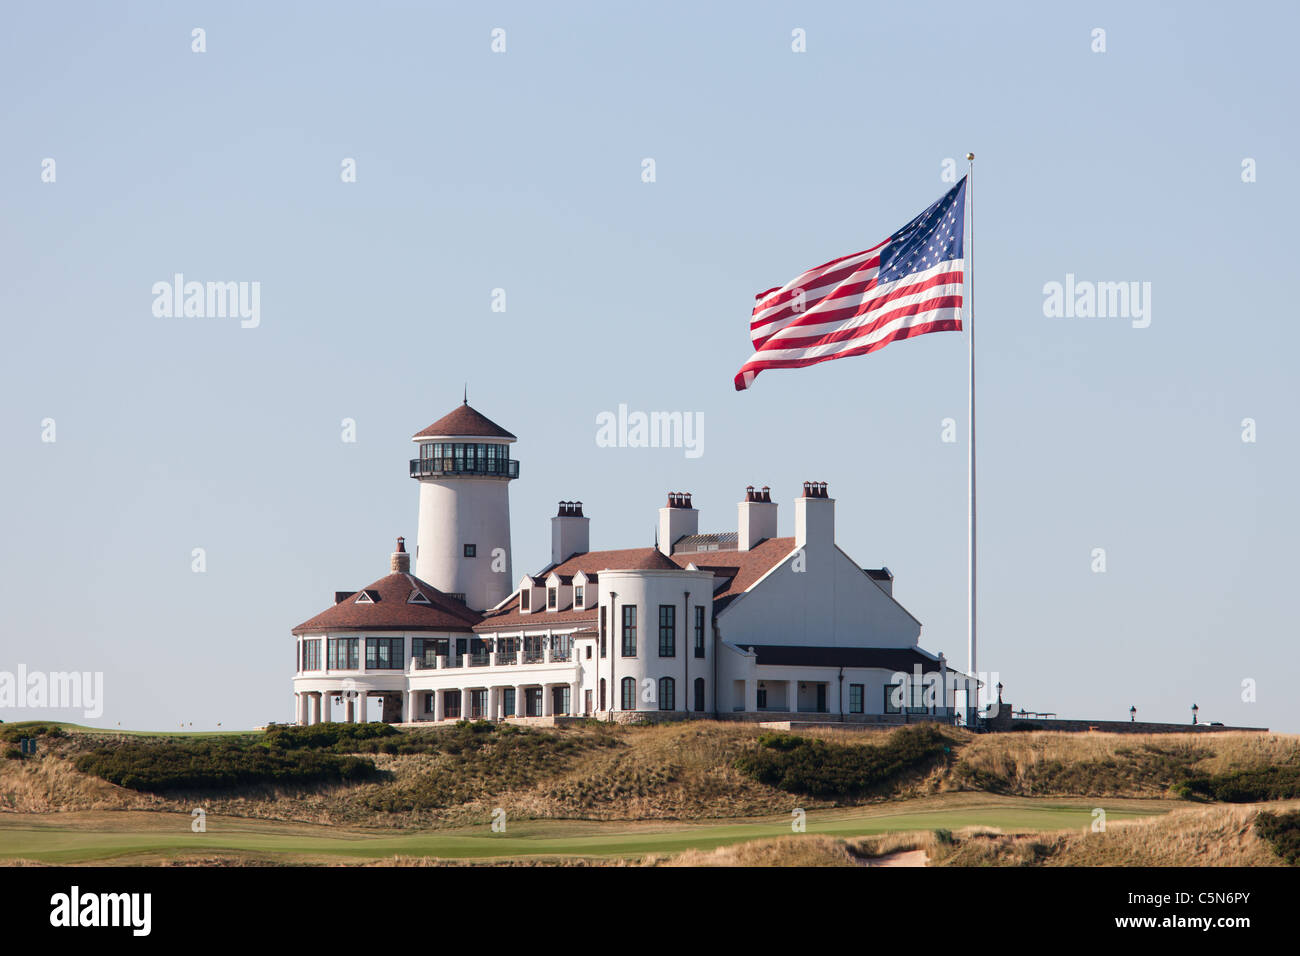 The clubhouse of the Bayonne Golf Club in Bayonne, New Jersey. - Stock Image